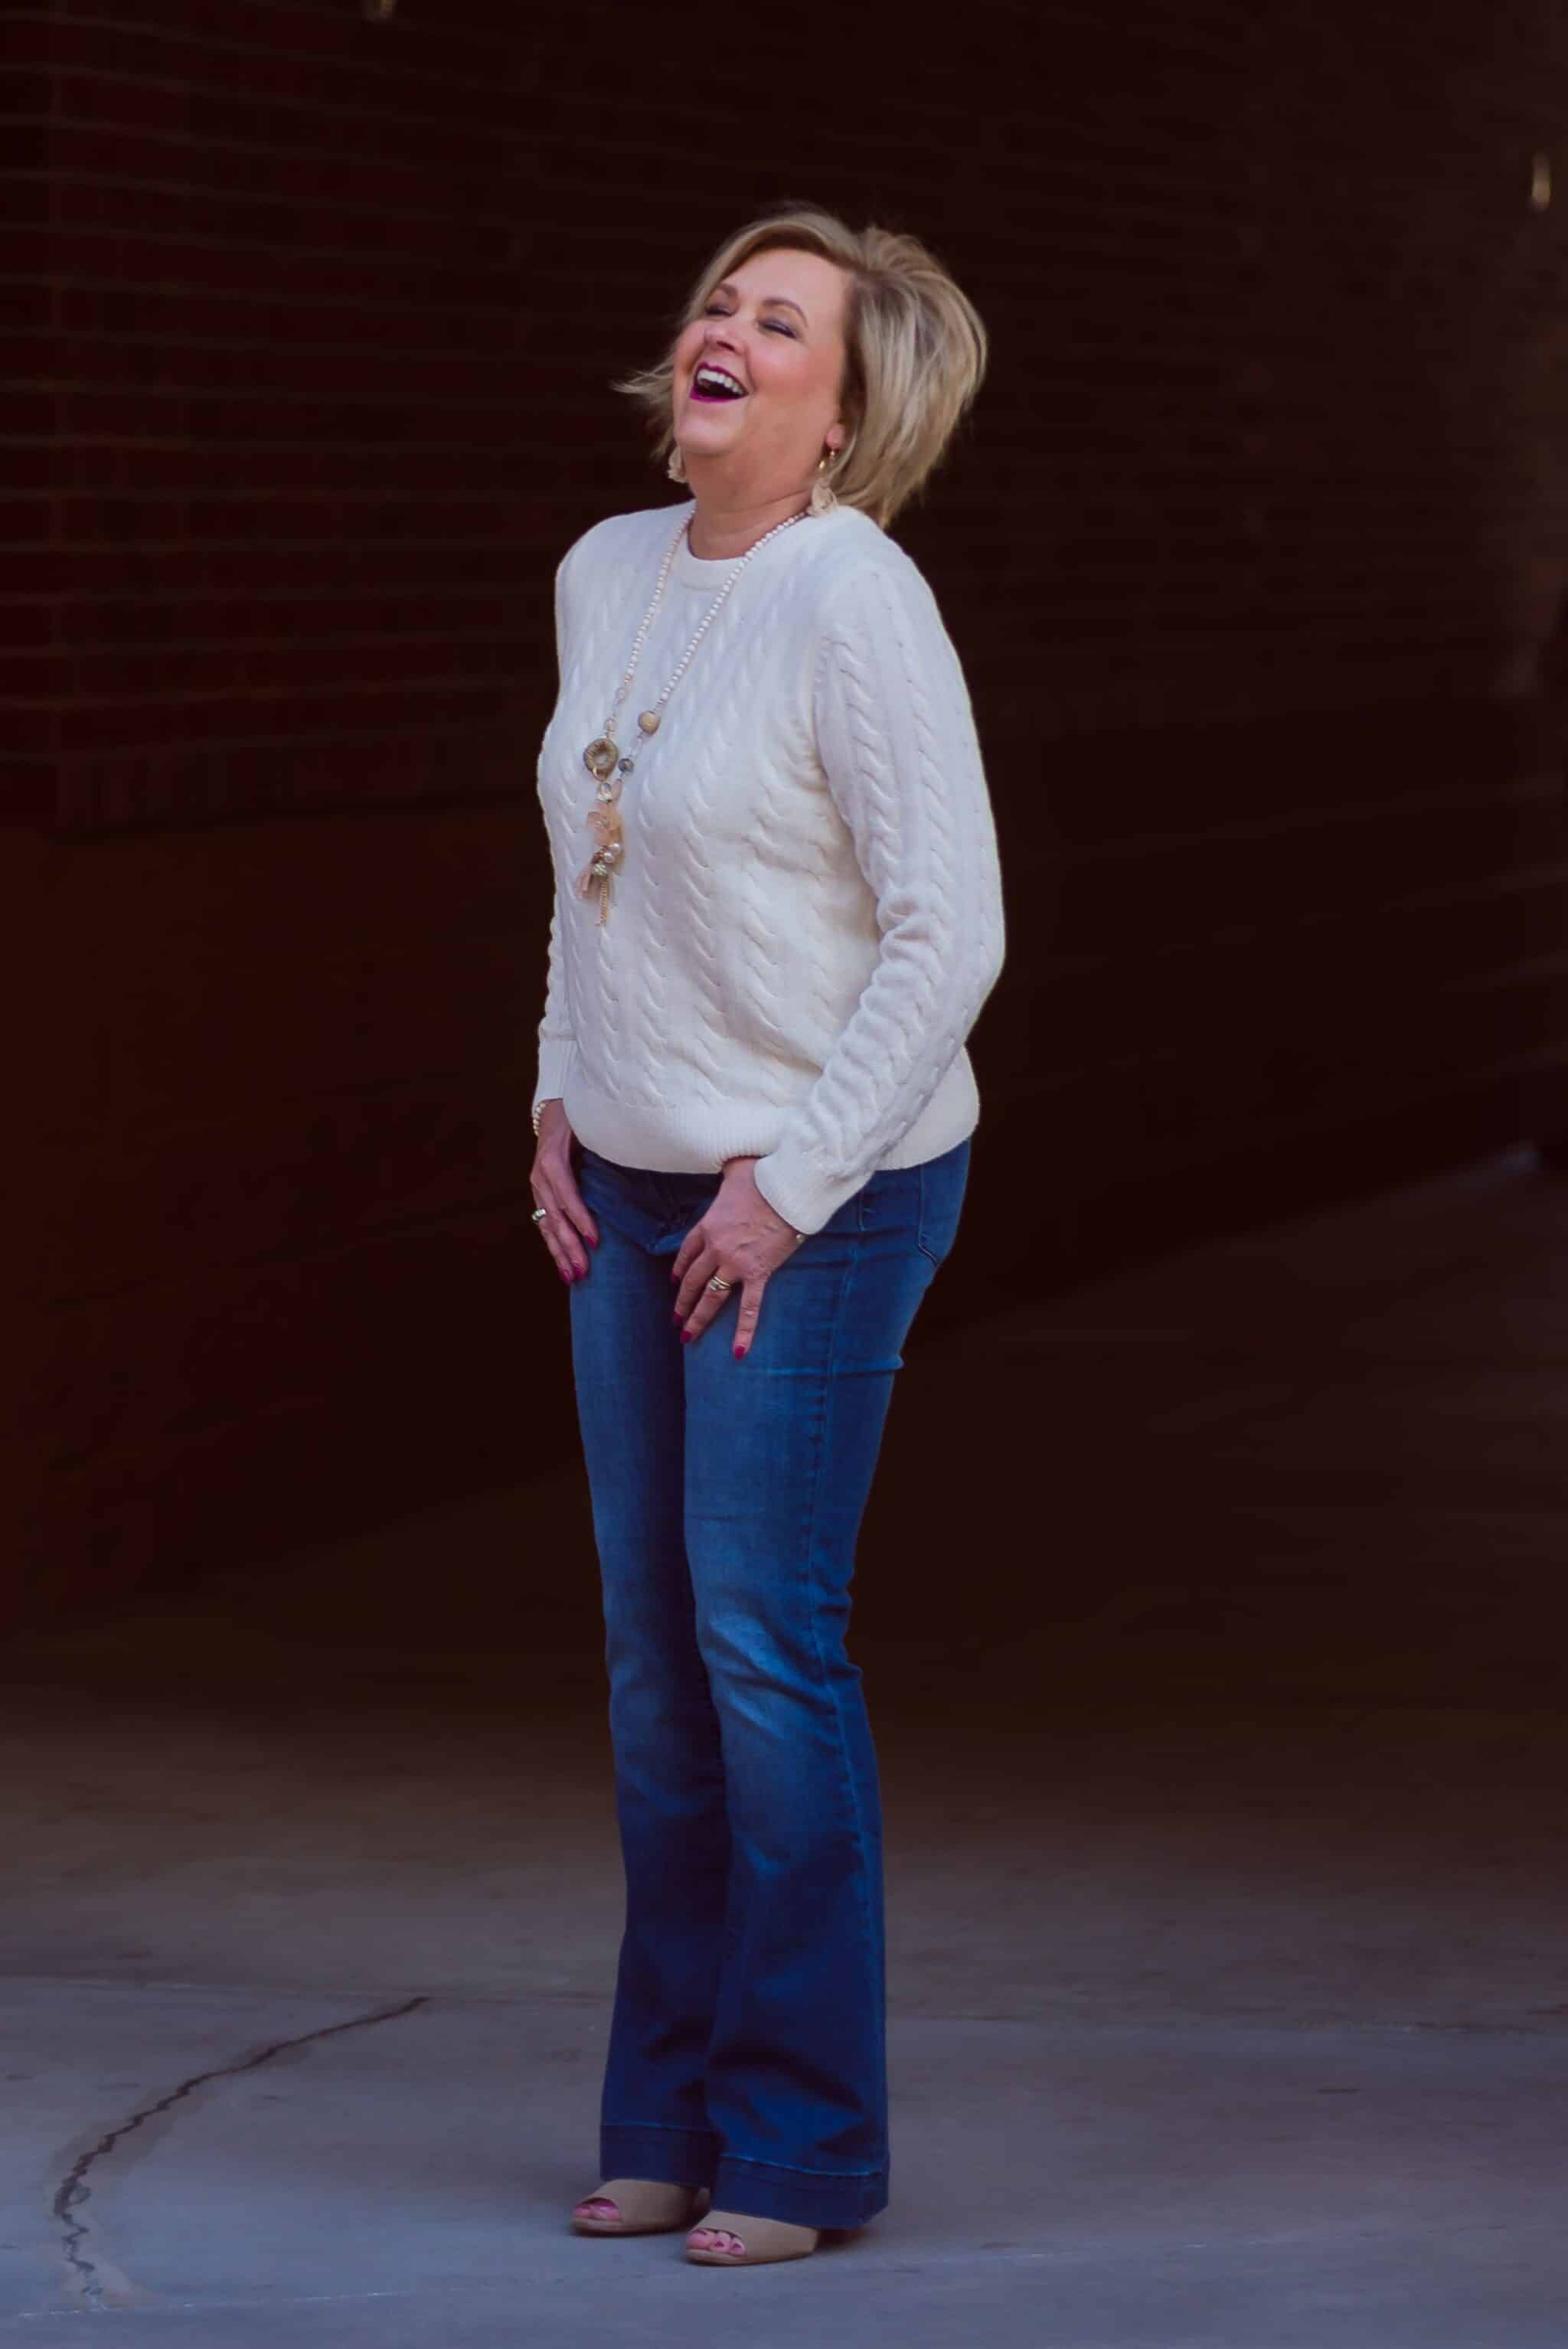 50 IS NOT OLD | CASUAL FRIDAY STYLE | FASHION OVER 40